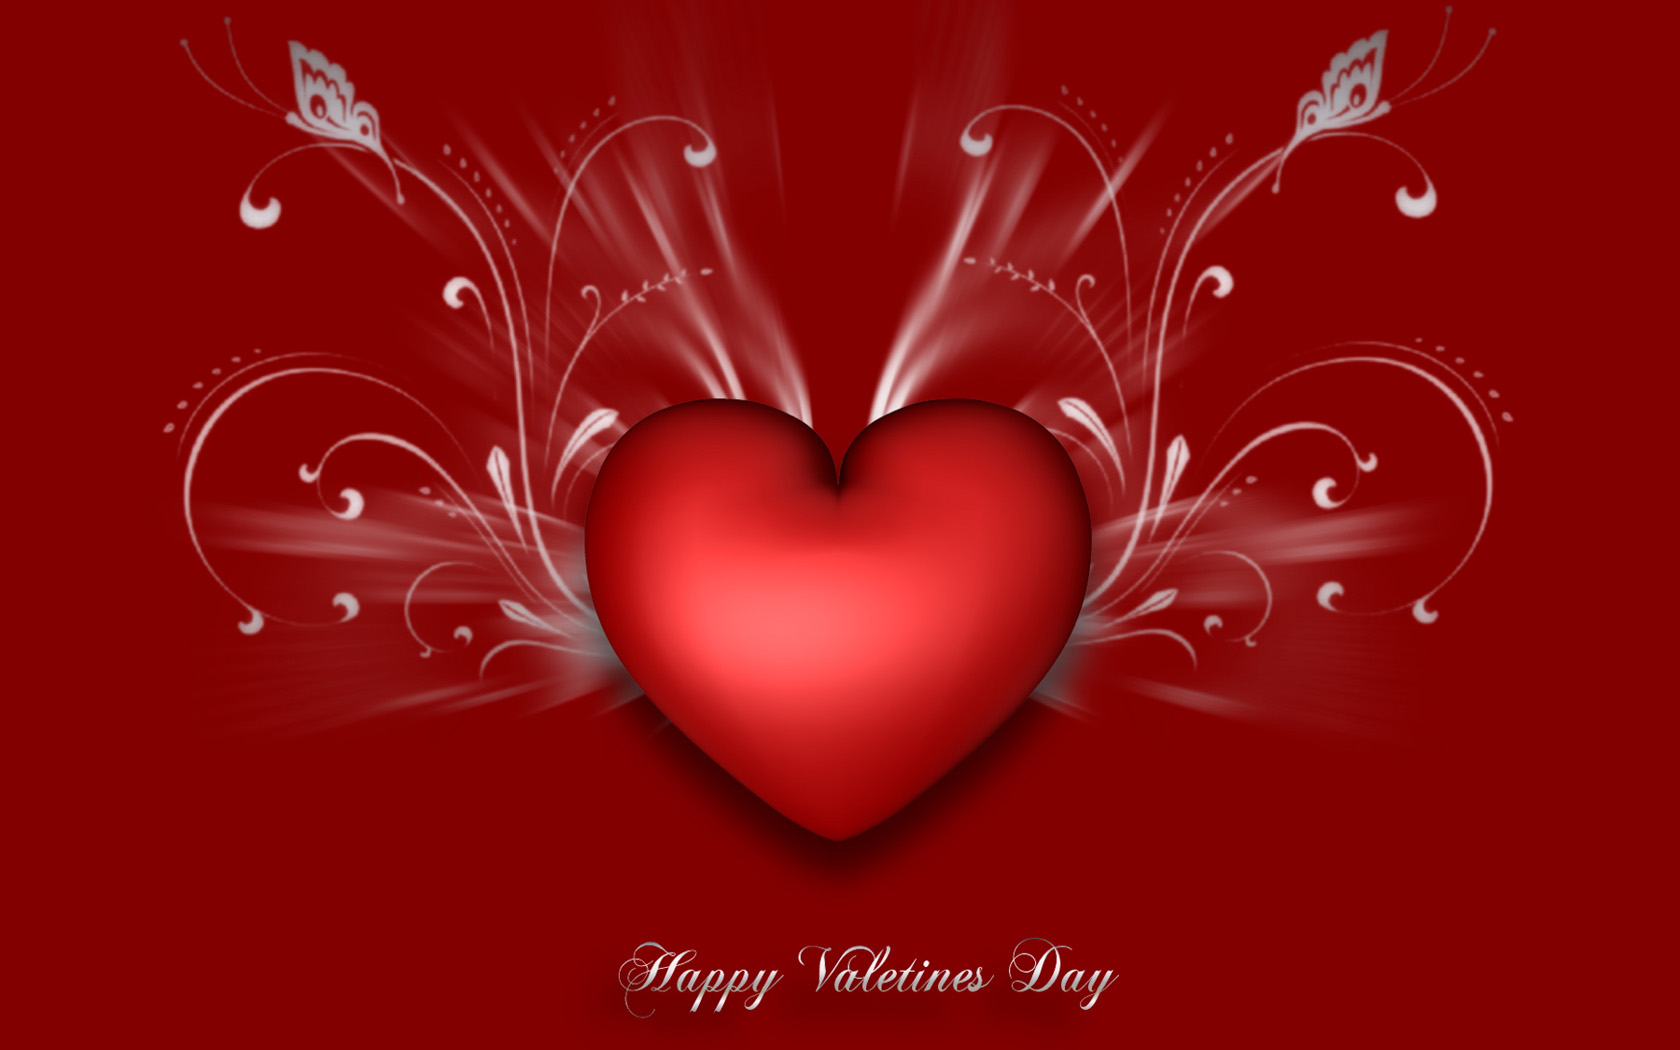 Best 43 Valentines Day Backgrounds on HipWallpaper Holiday 1680x1050